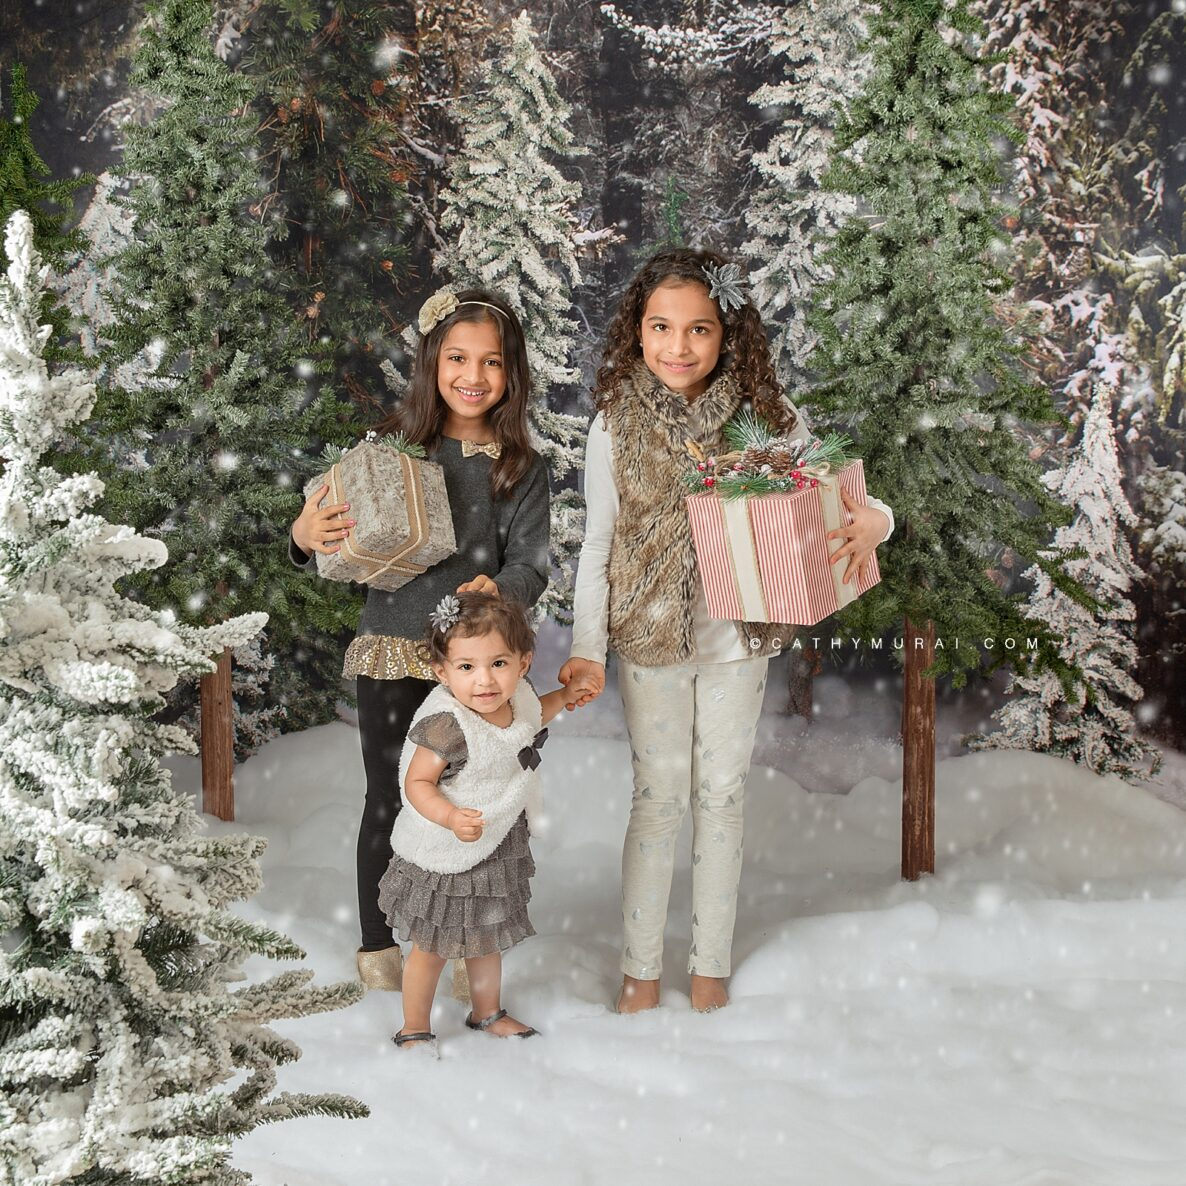 Orange County holiday portrait mini session let it snow siblings holiday photo at snowing Christmas tree farm taken in Irvine, CA